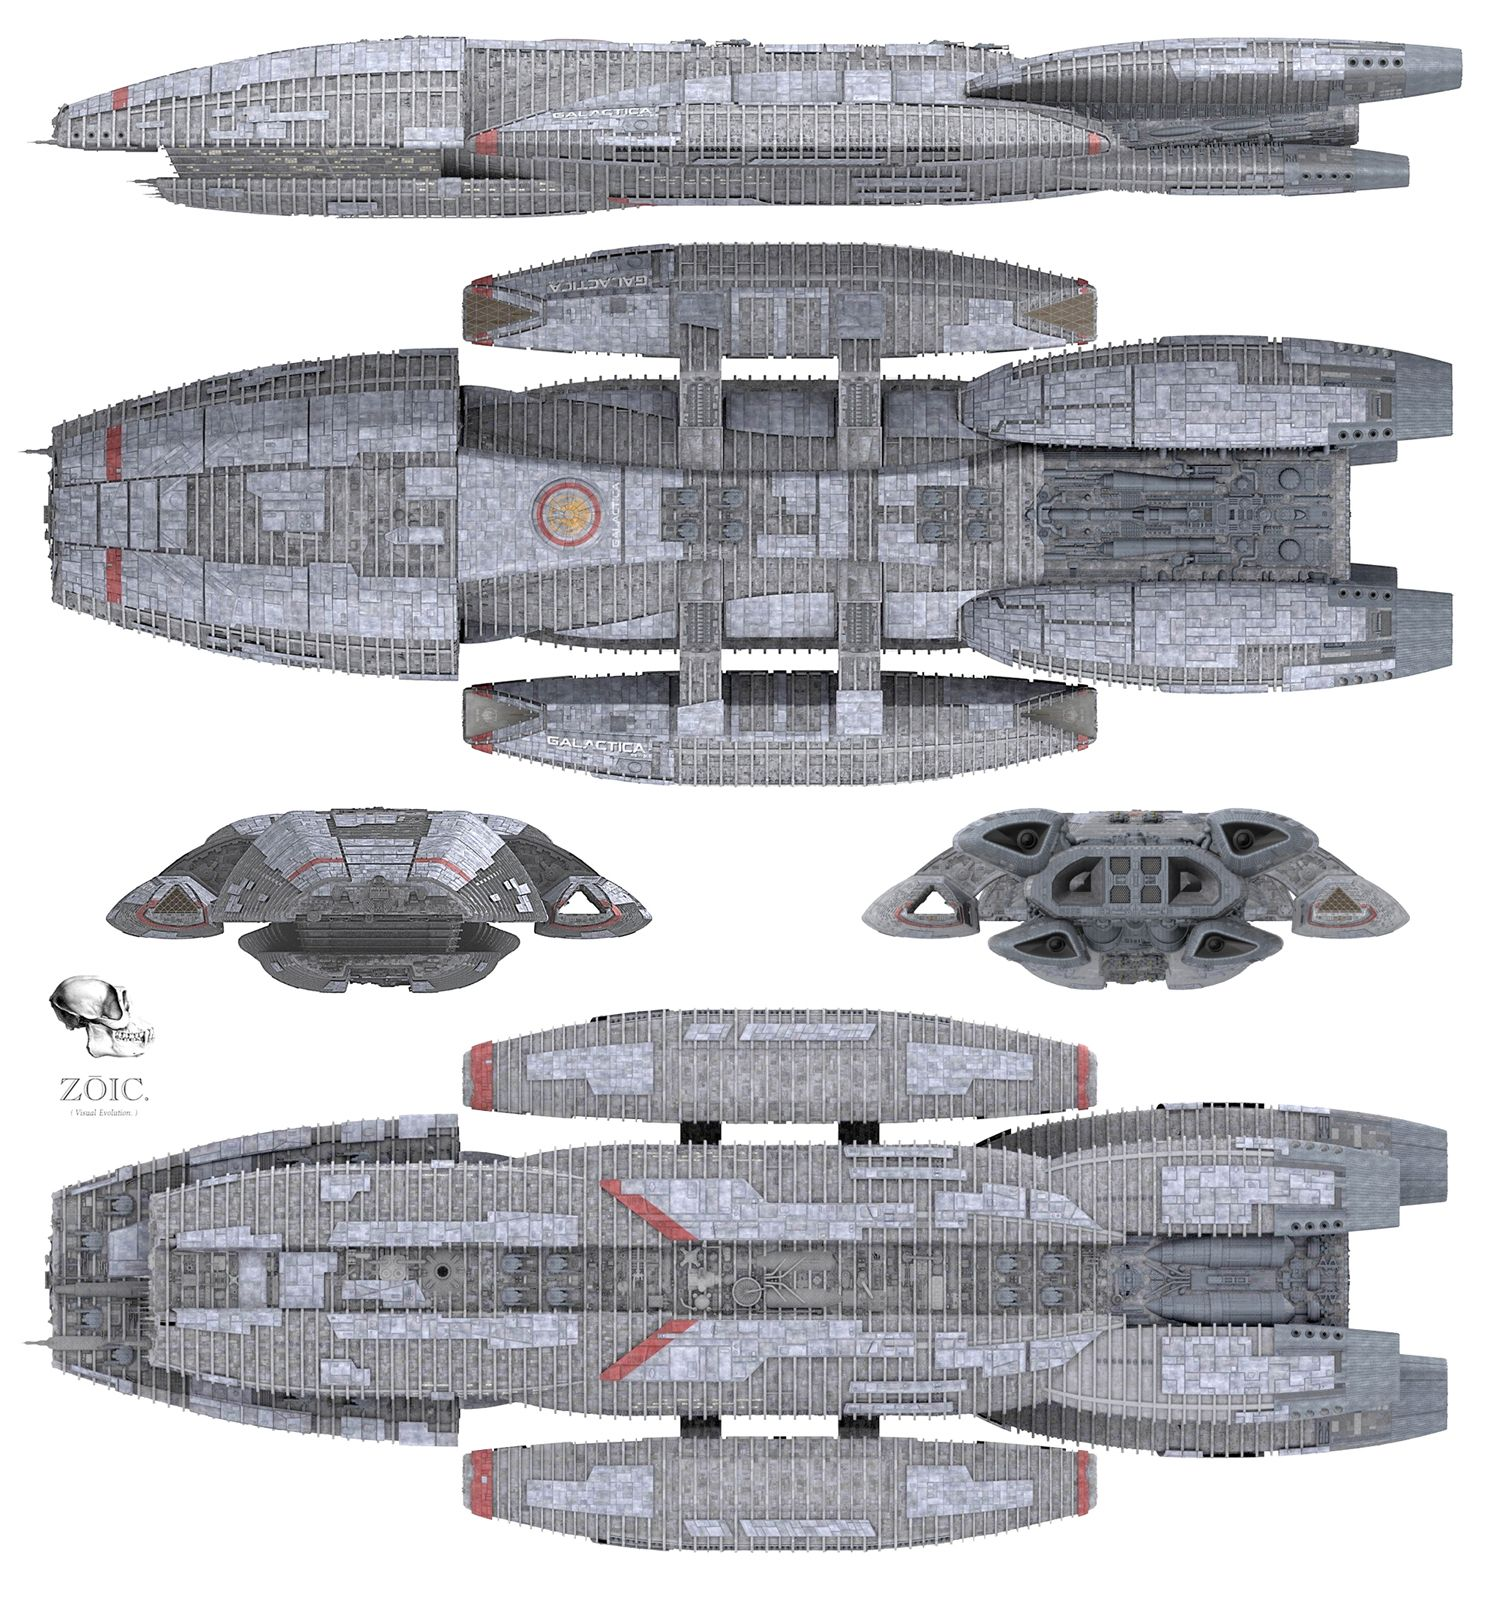 Thought you guys might get a kick outta this.. - Page 8 ...  |Battlestar Galactica Spacecraft